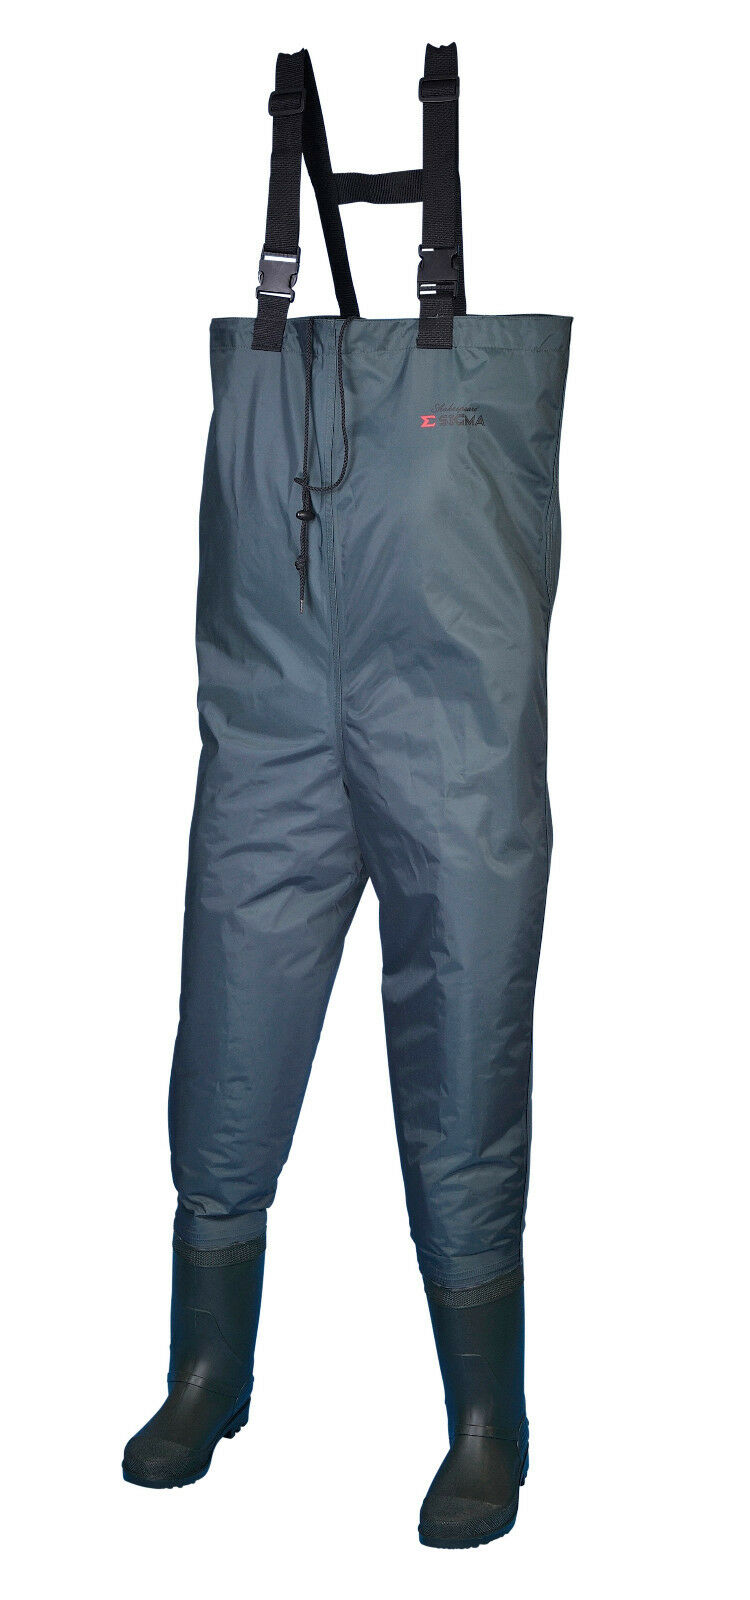 Shakespeare Nylon Chest Waders Chest Wader Wathose Waders Wat Hose